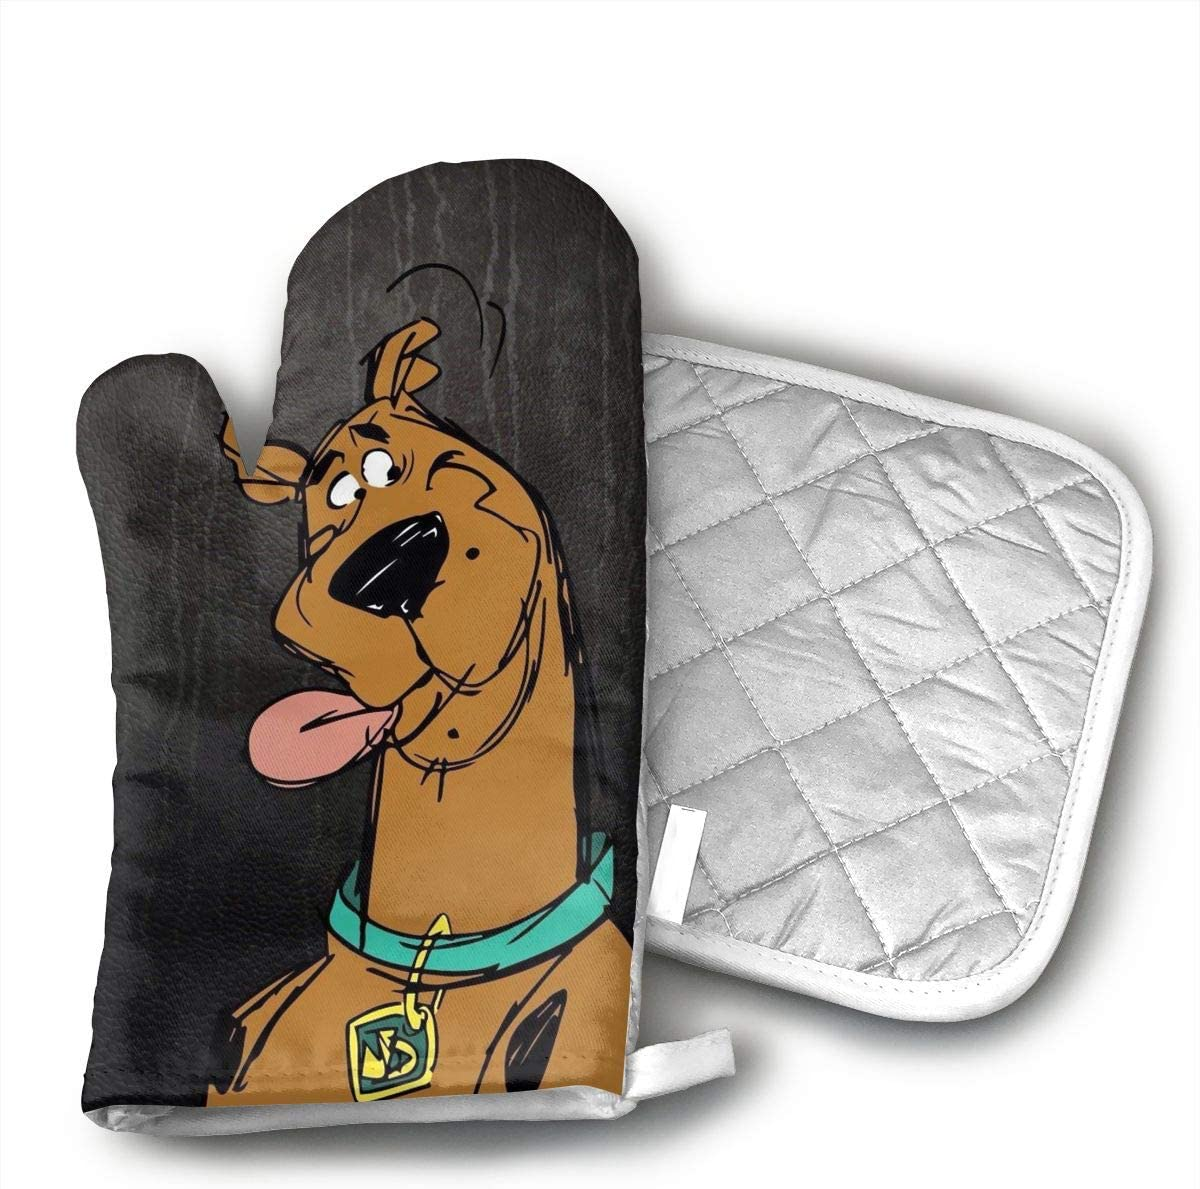 ECEED DAI Scooby Doo Oven Mitts,with Potholders Oven Gloves,Insulated Quilted Cotton Potholders